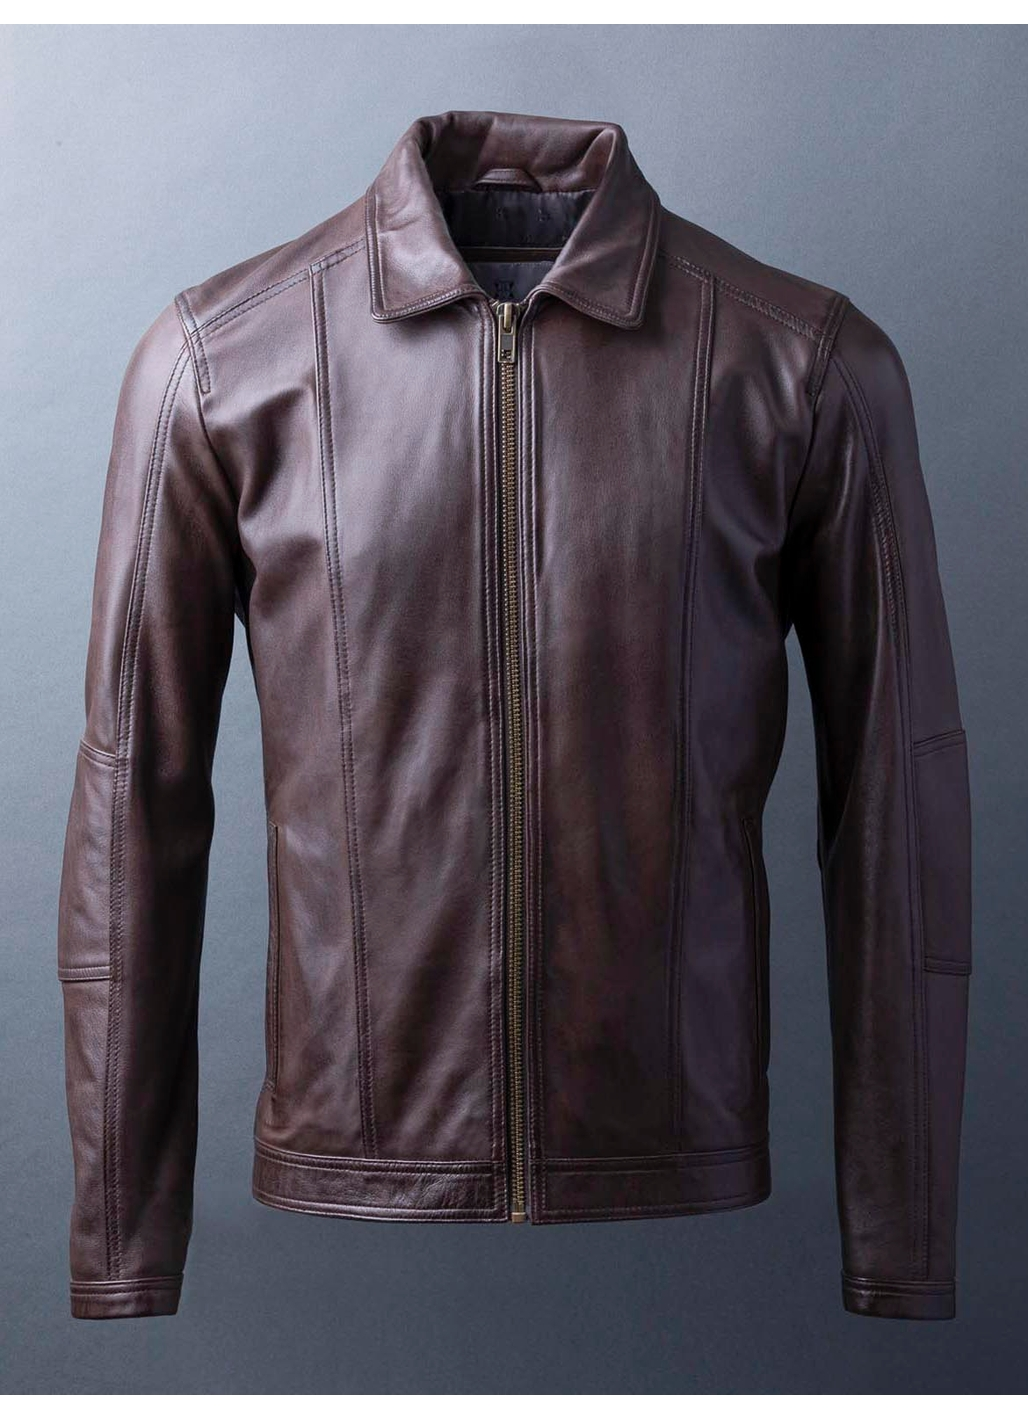 Rothay Collared Leather Jacket in Brown